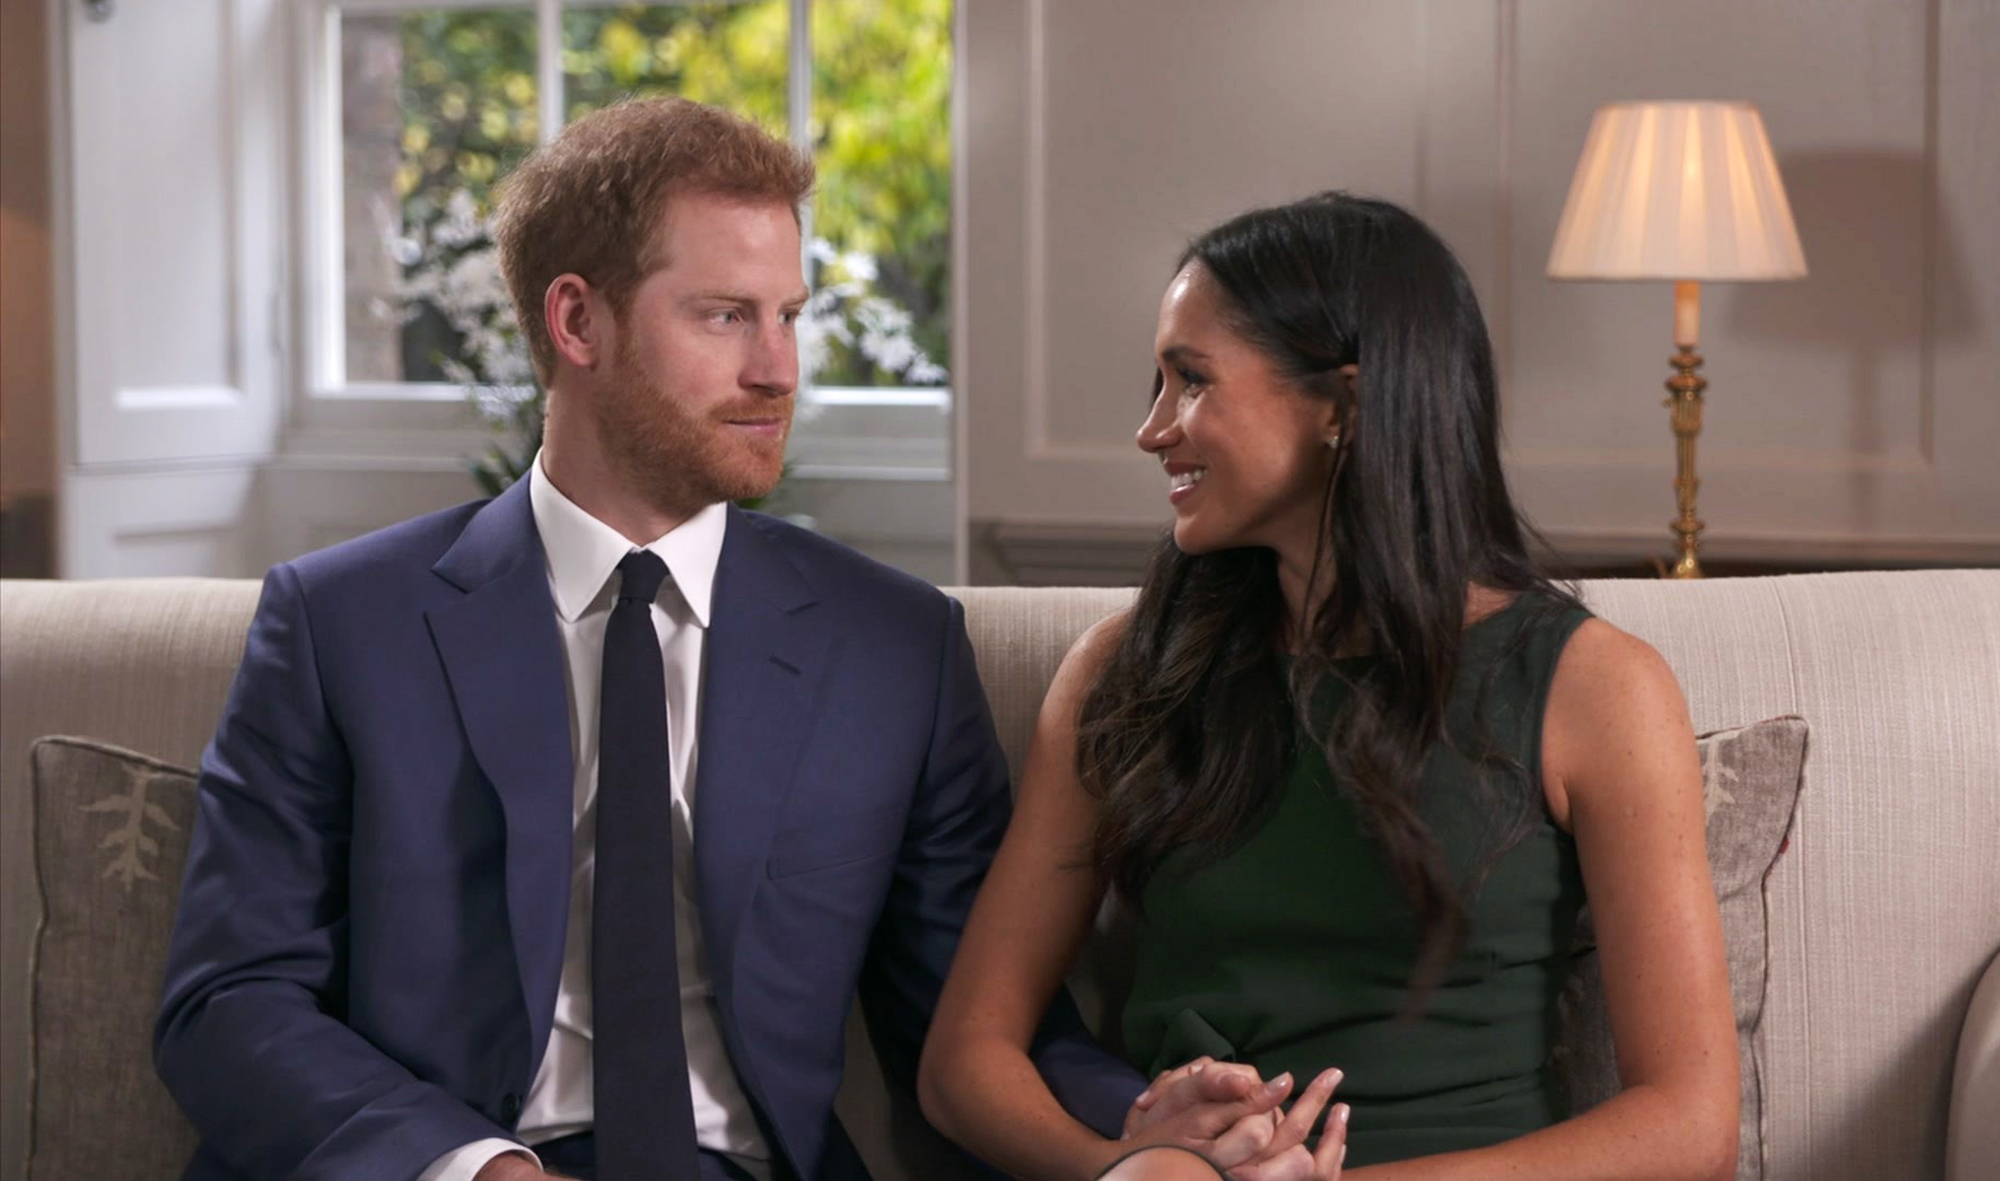 In this photo taken from video Britain's Prince Harry and Meghan Markle talk about their engagement during an interview in London on Nov. 27, 2017.